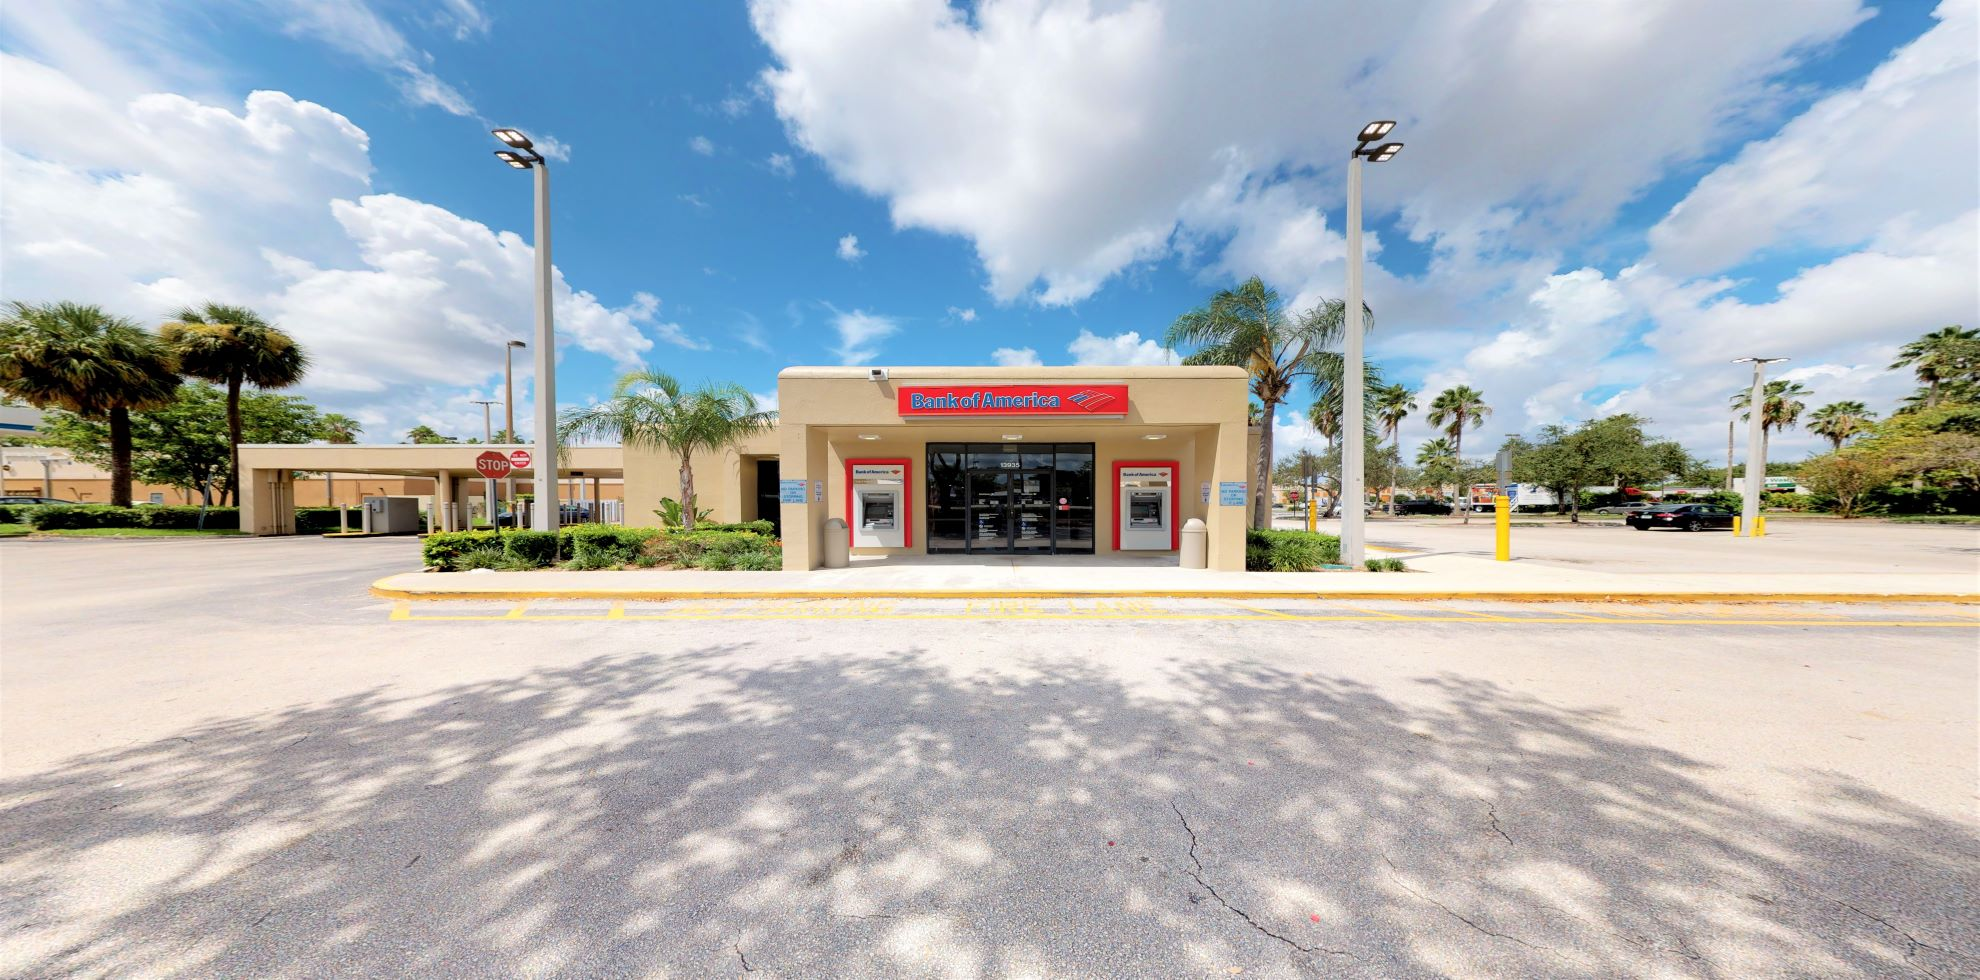 Bank of America financial center with drive-thru ATM and teller | 13935 SW 88th St, Miami, FL 33186